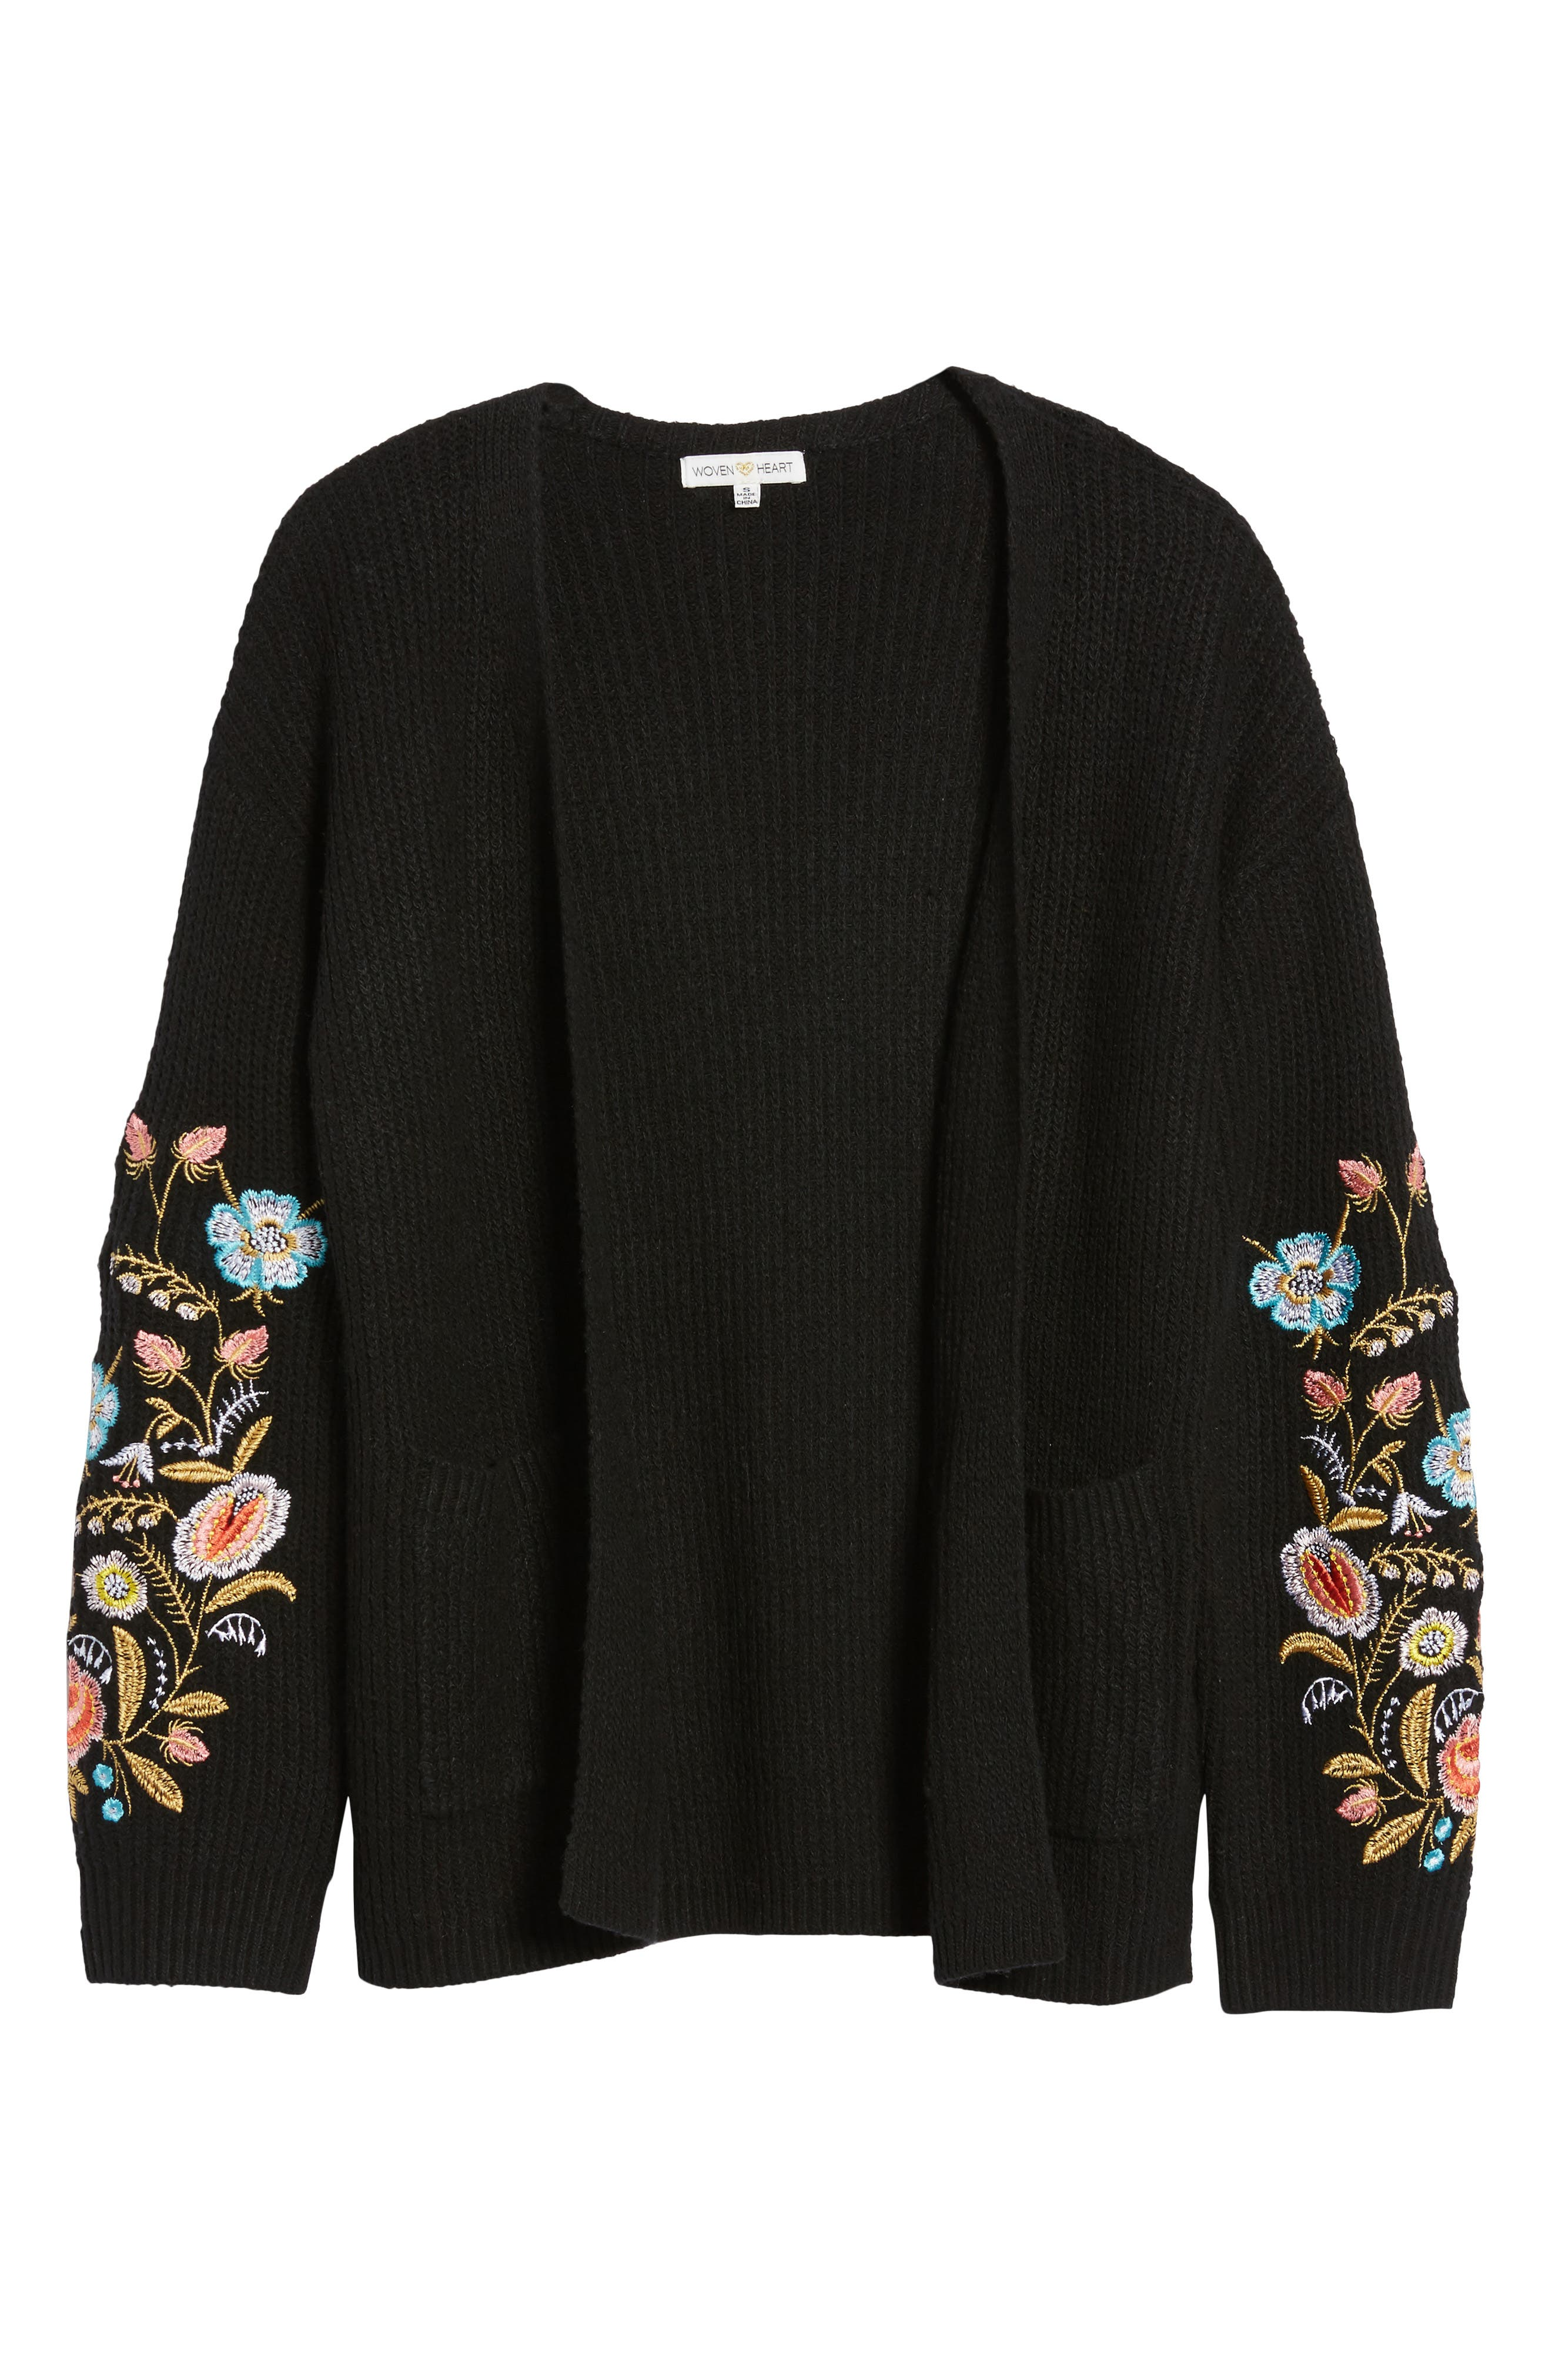 Embroidered Cardigan,                             Alternate thumbnail 6, color,                             Black